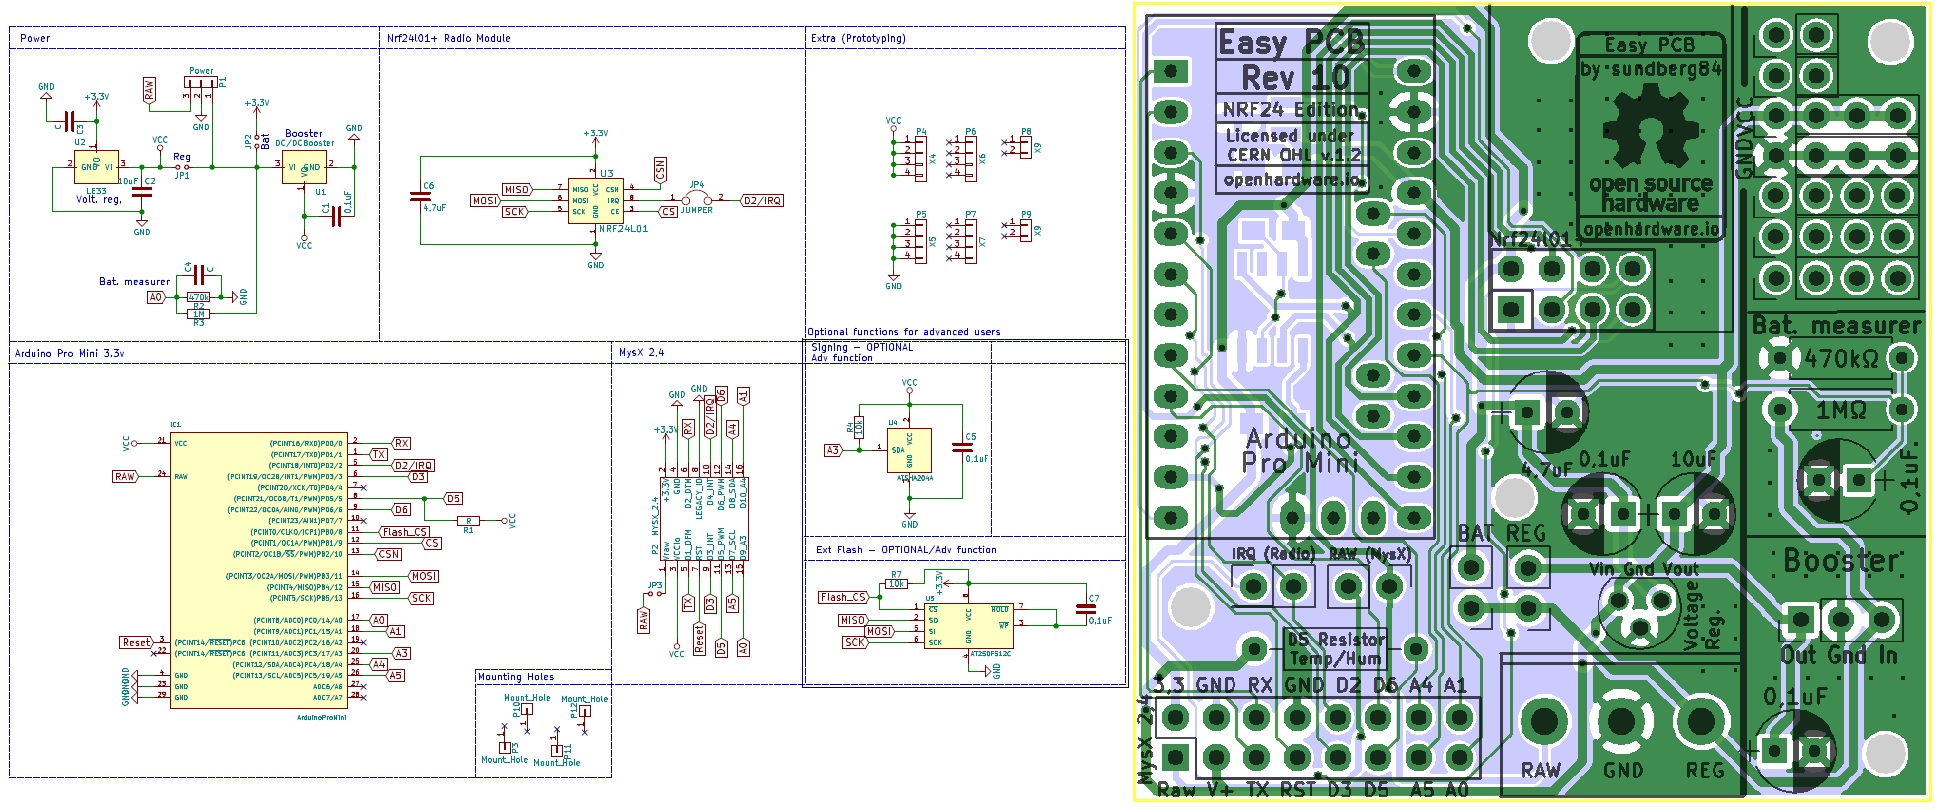 Easy Newbie Pcb For Mysensors Enables Open 12v Linear Regulator Transceiver Radio Enter Image Description Here